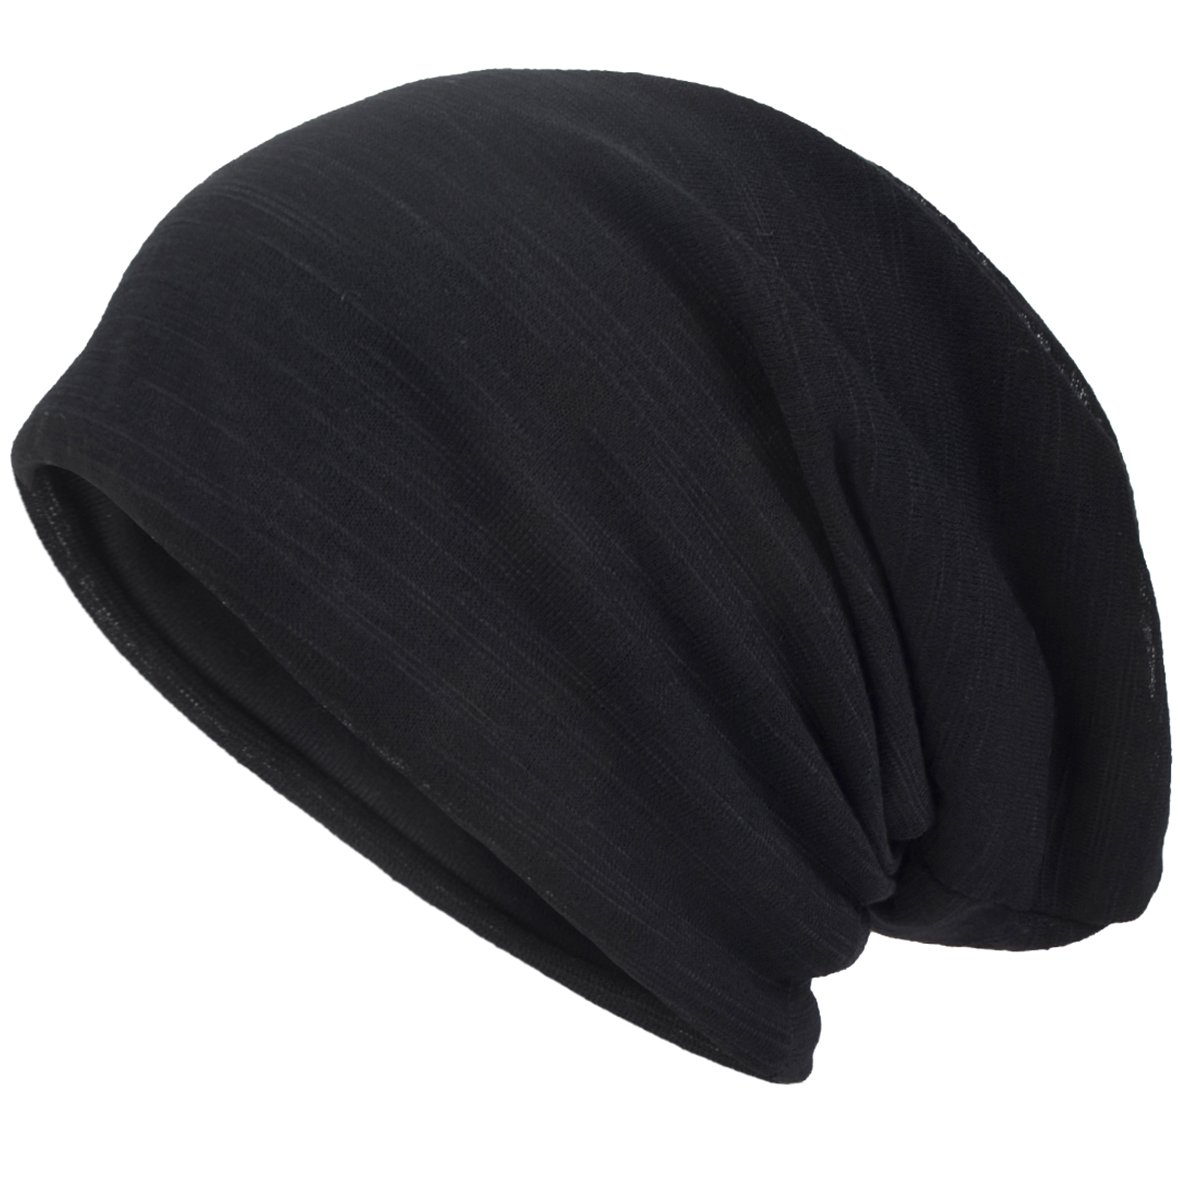 Antigua-and-Barbuda Black Beanie Hat for Men and Women Winter Warm Hats Knit Slouchy Thick Skull Cap